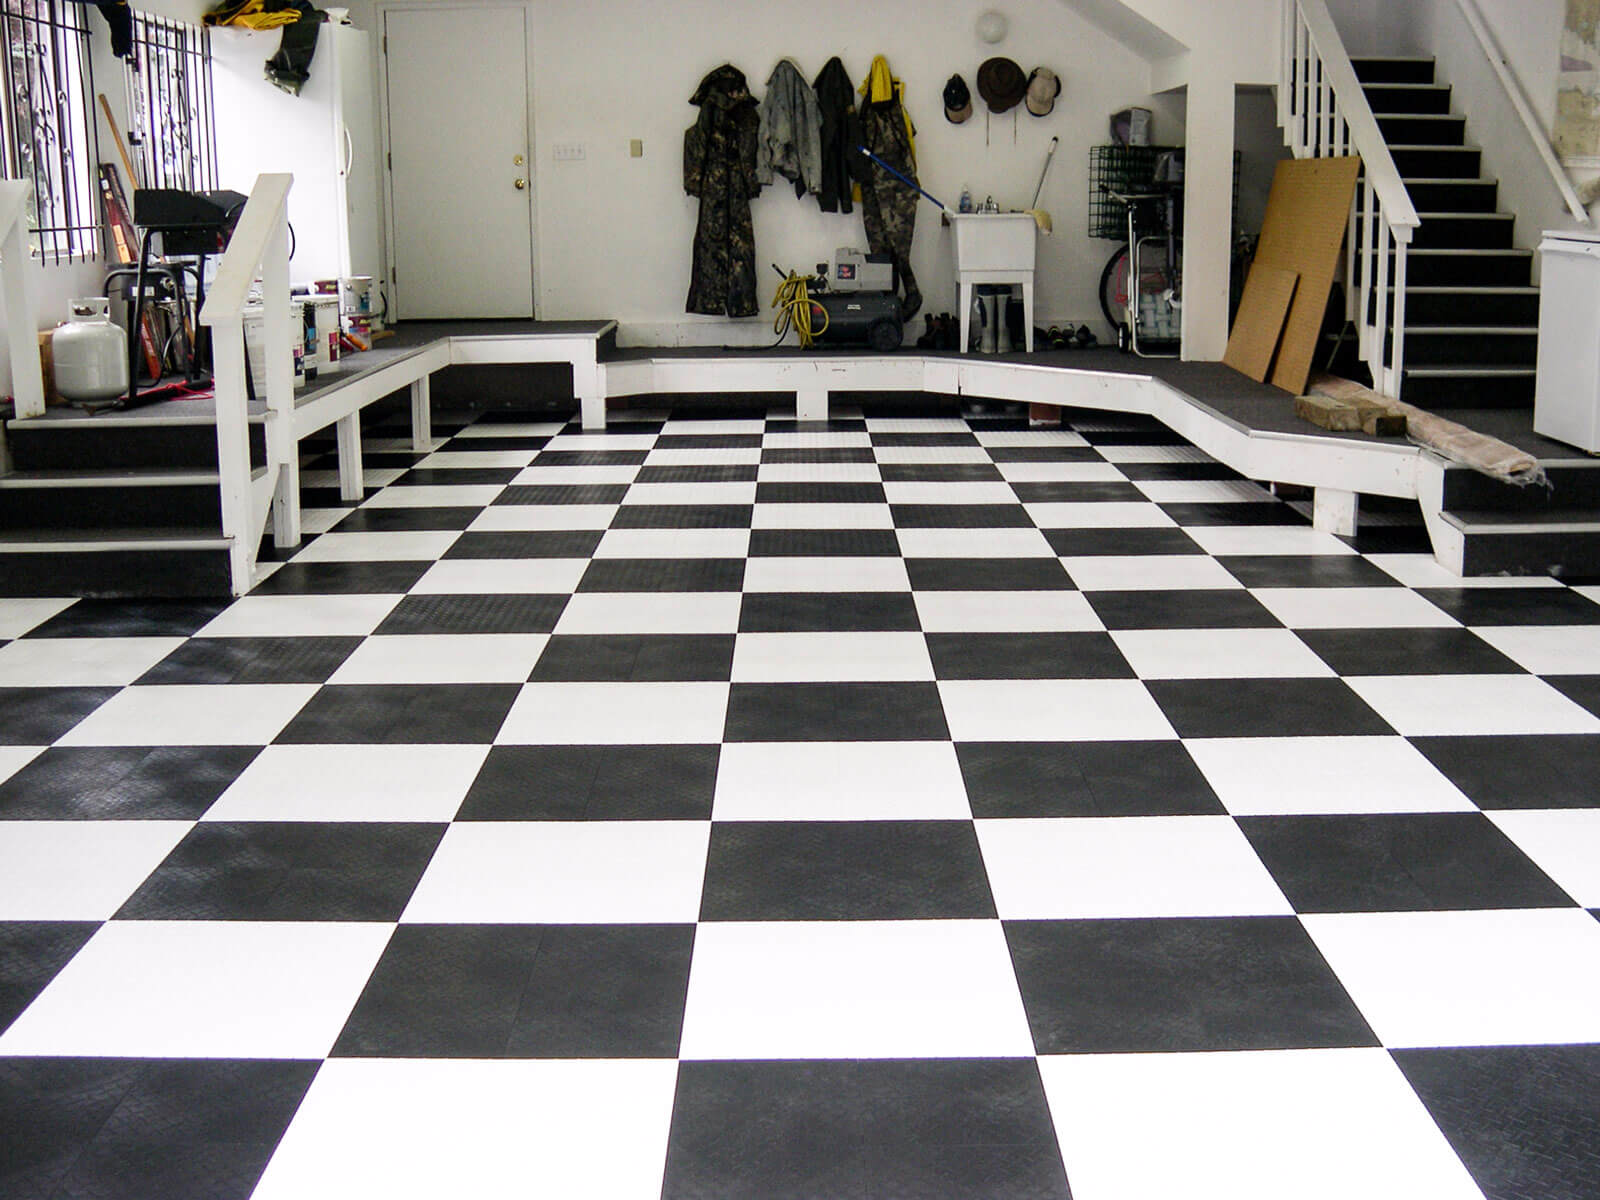 Basement area with checkered RaceDeck XL floor.